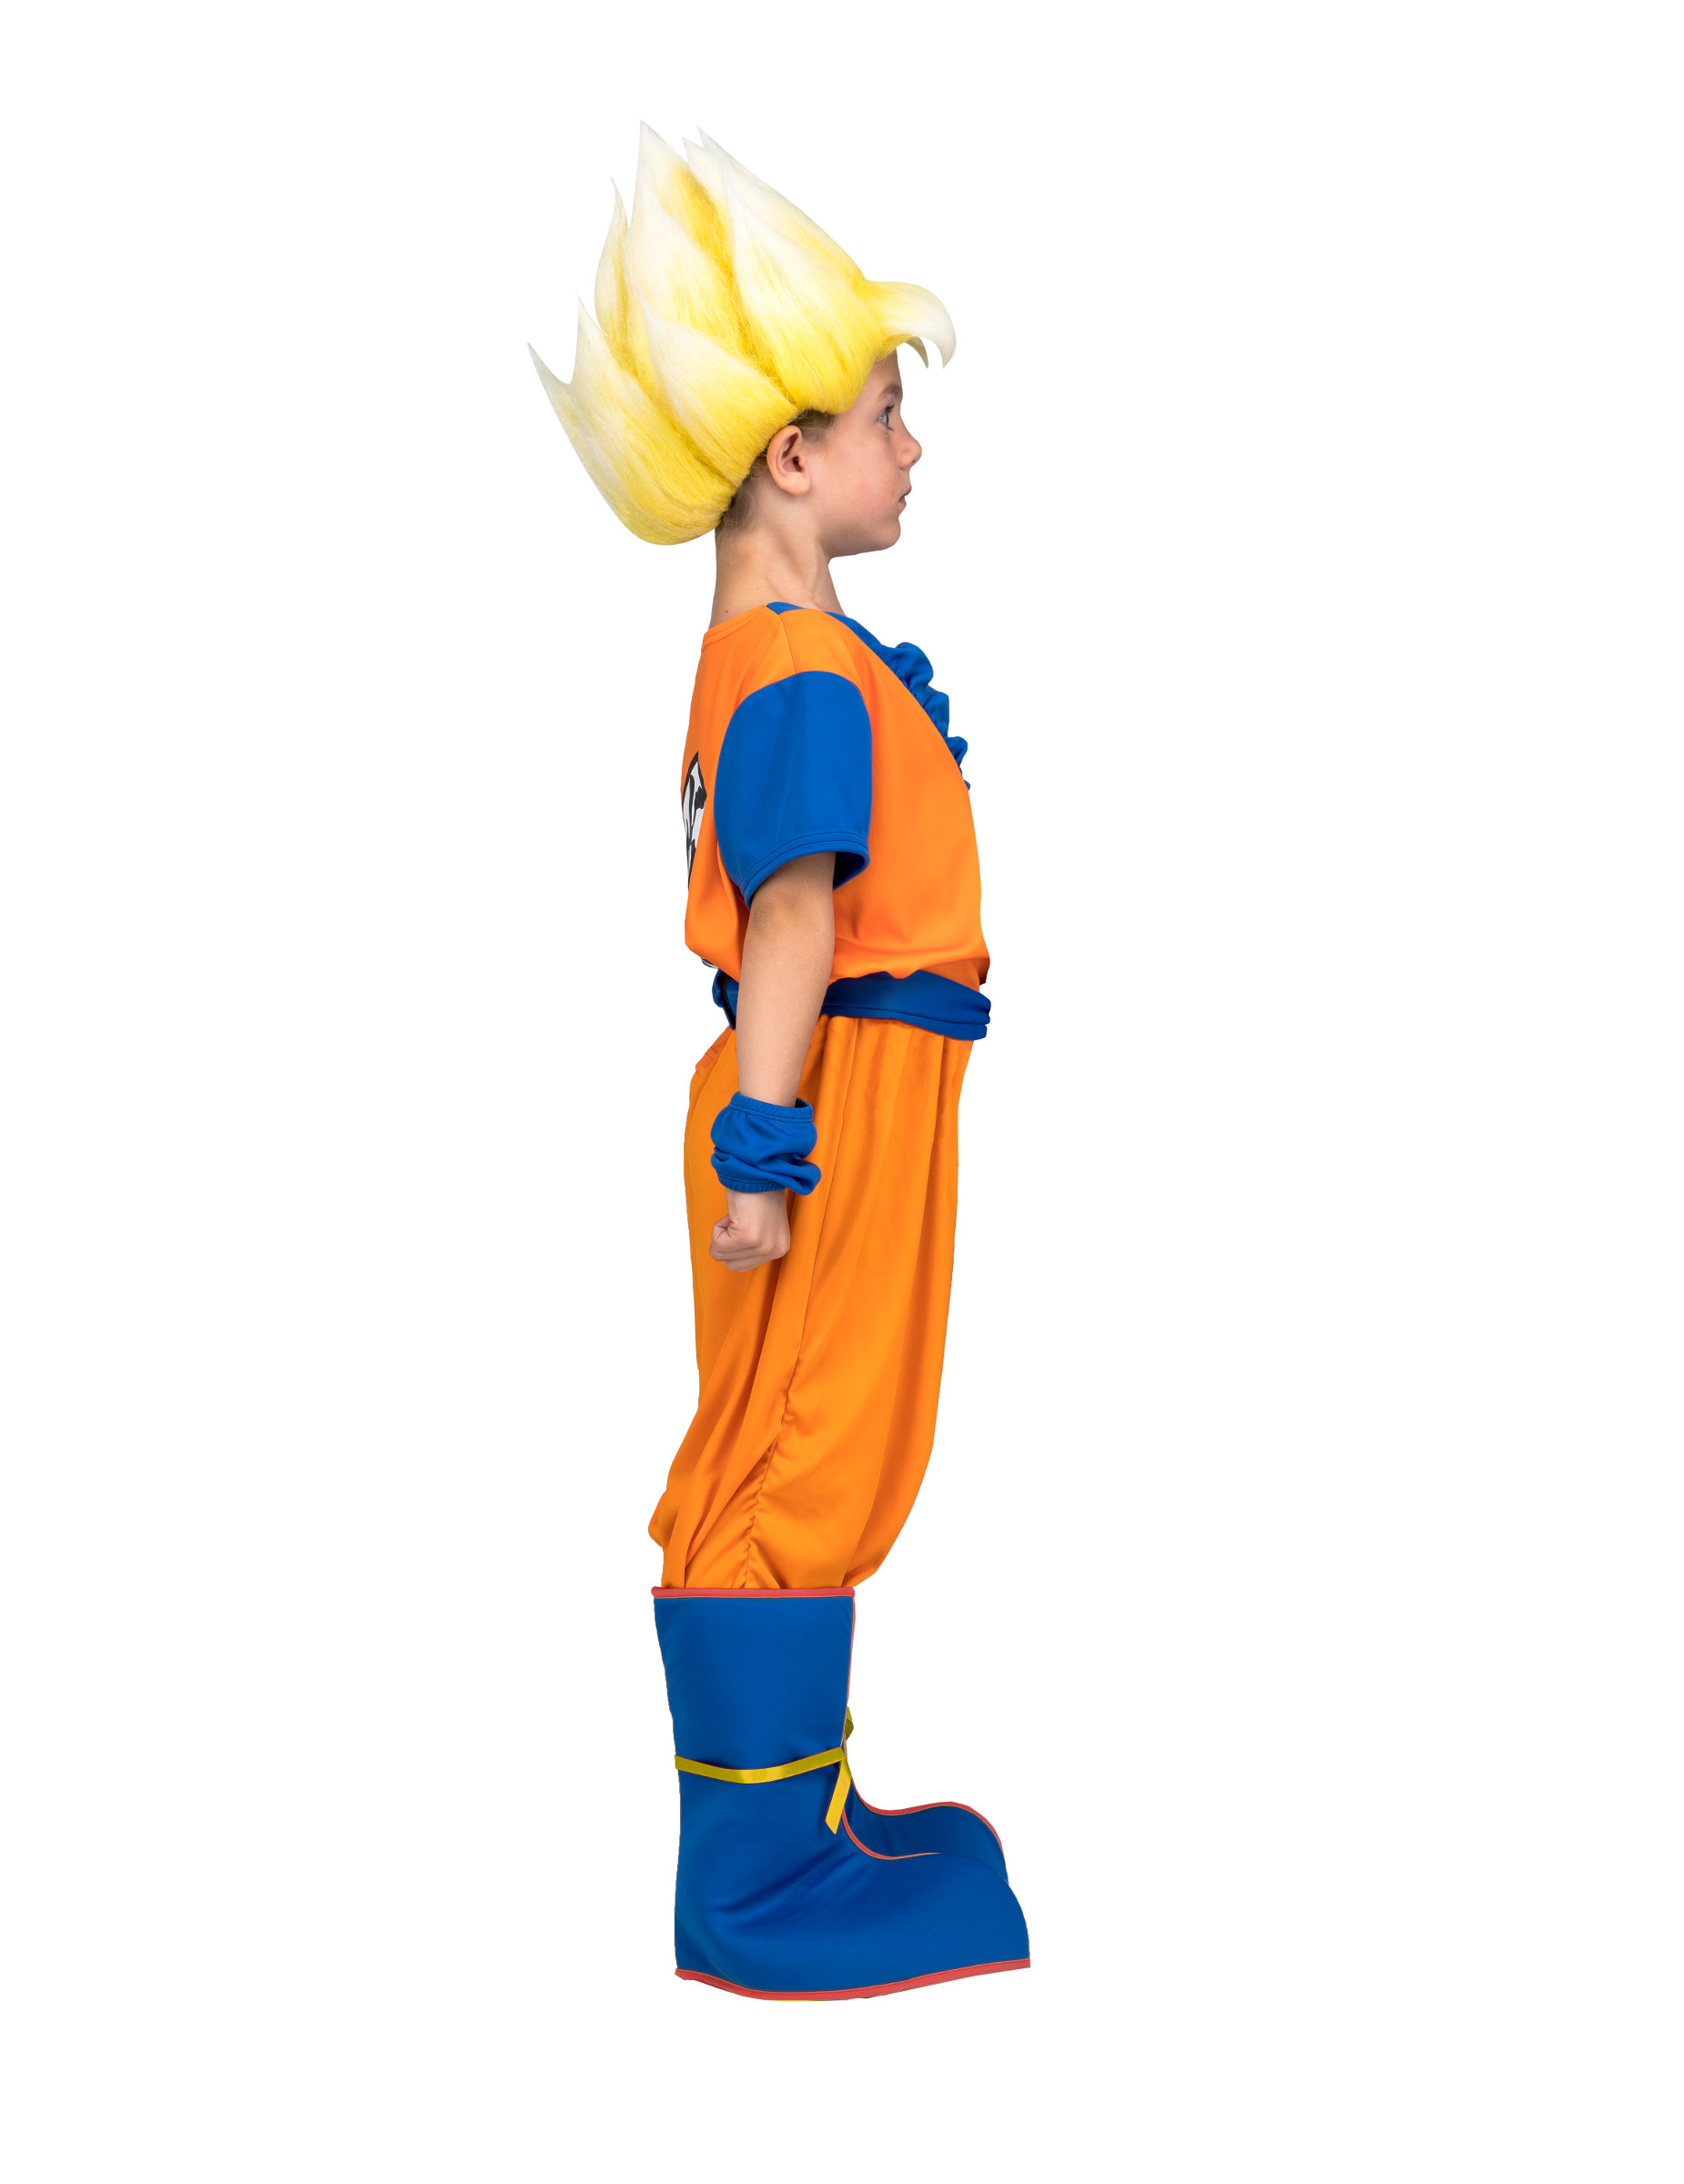 Super Saiyan Goku Dragon Ball-Lizenzkostüm für Kinder orange-blau Cod.318237